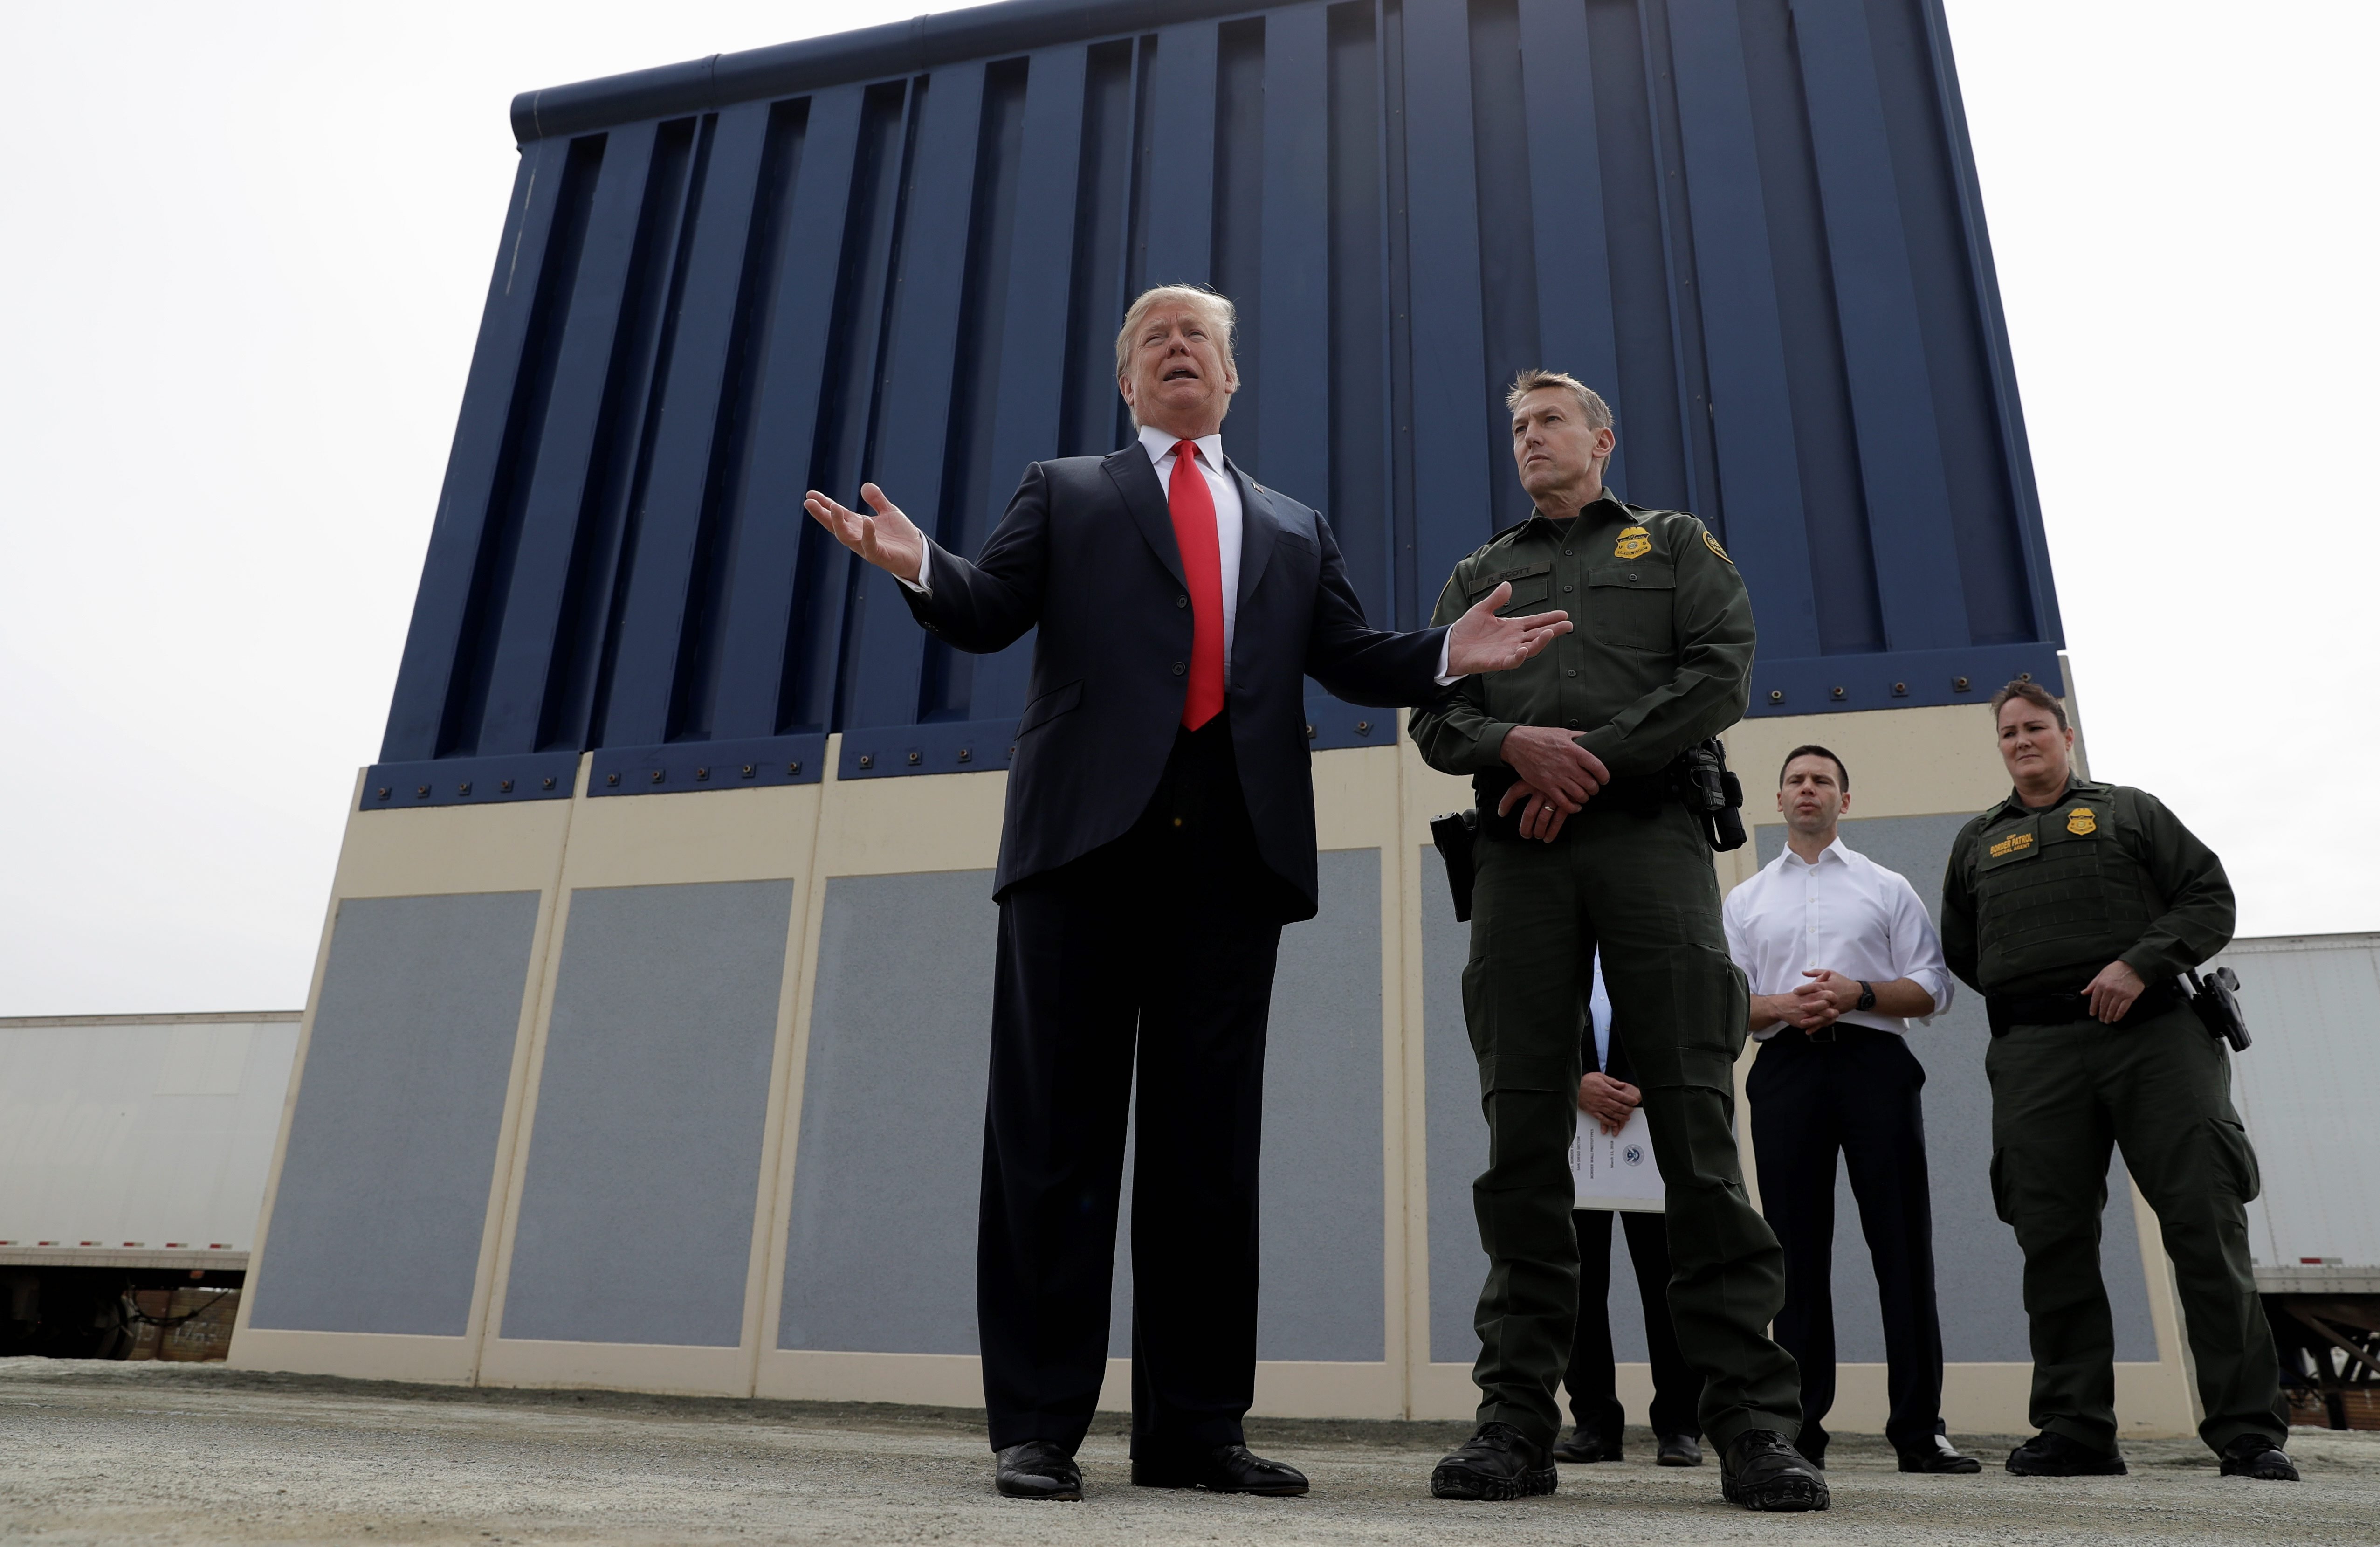 Donald Trump says wall will stop '99.5 percent' of illegal traffic